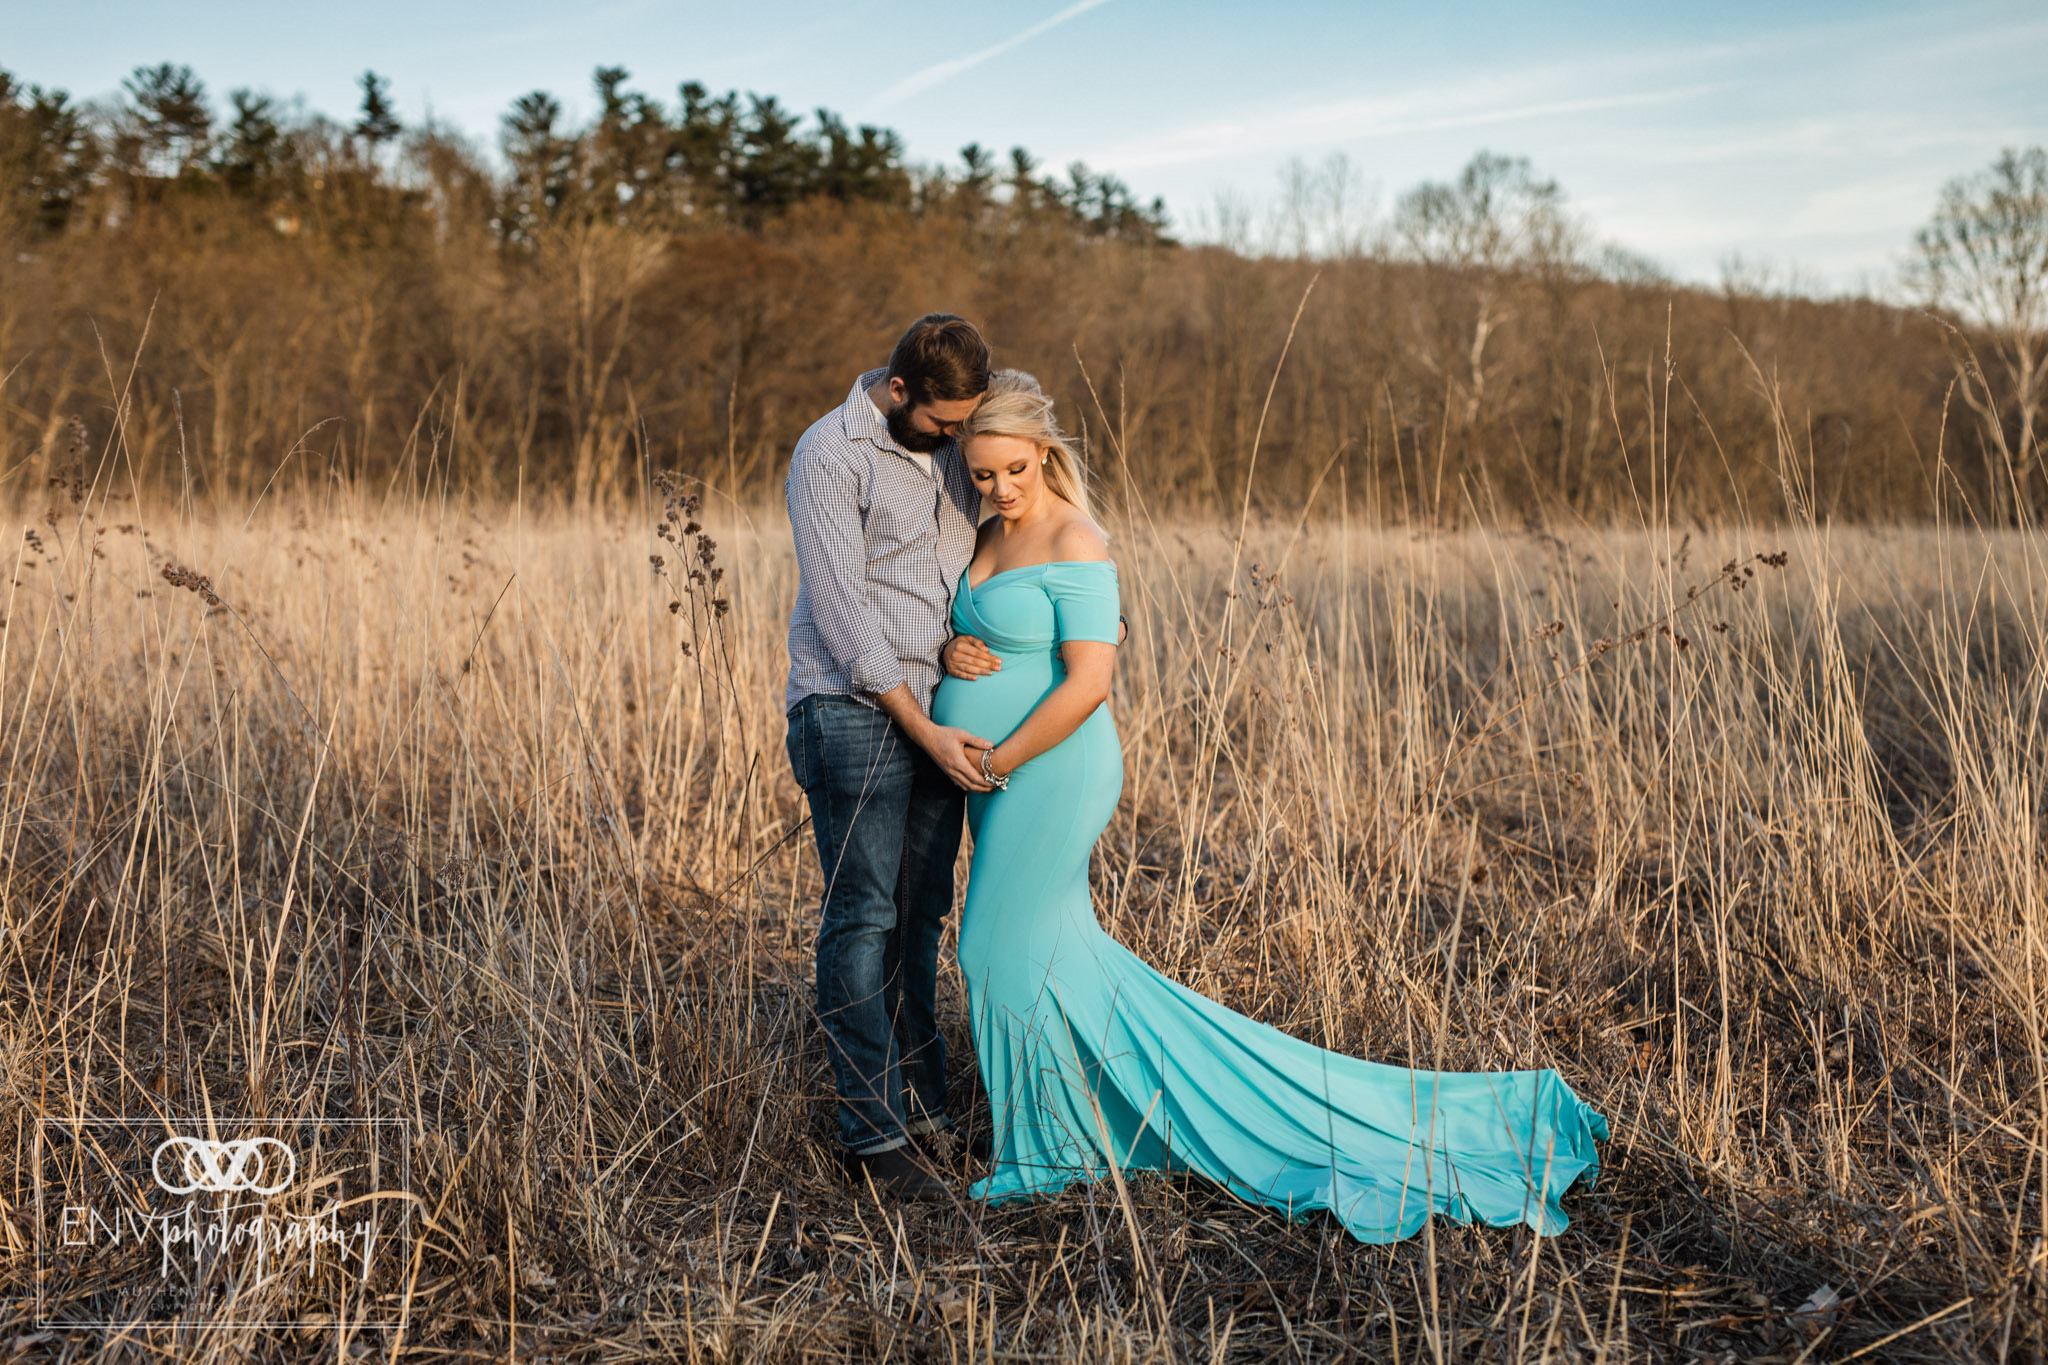 mount vernon columbus ohio maternity newborn photographer 42019 (4).jpg